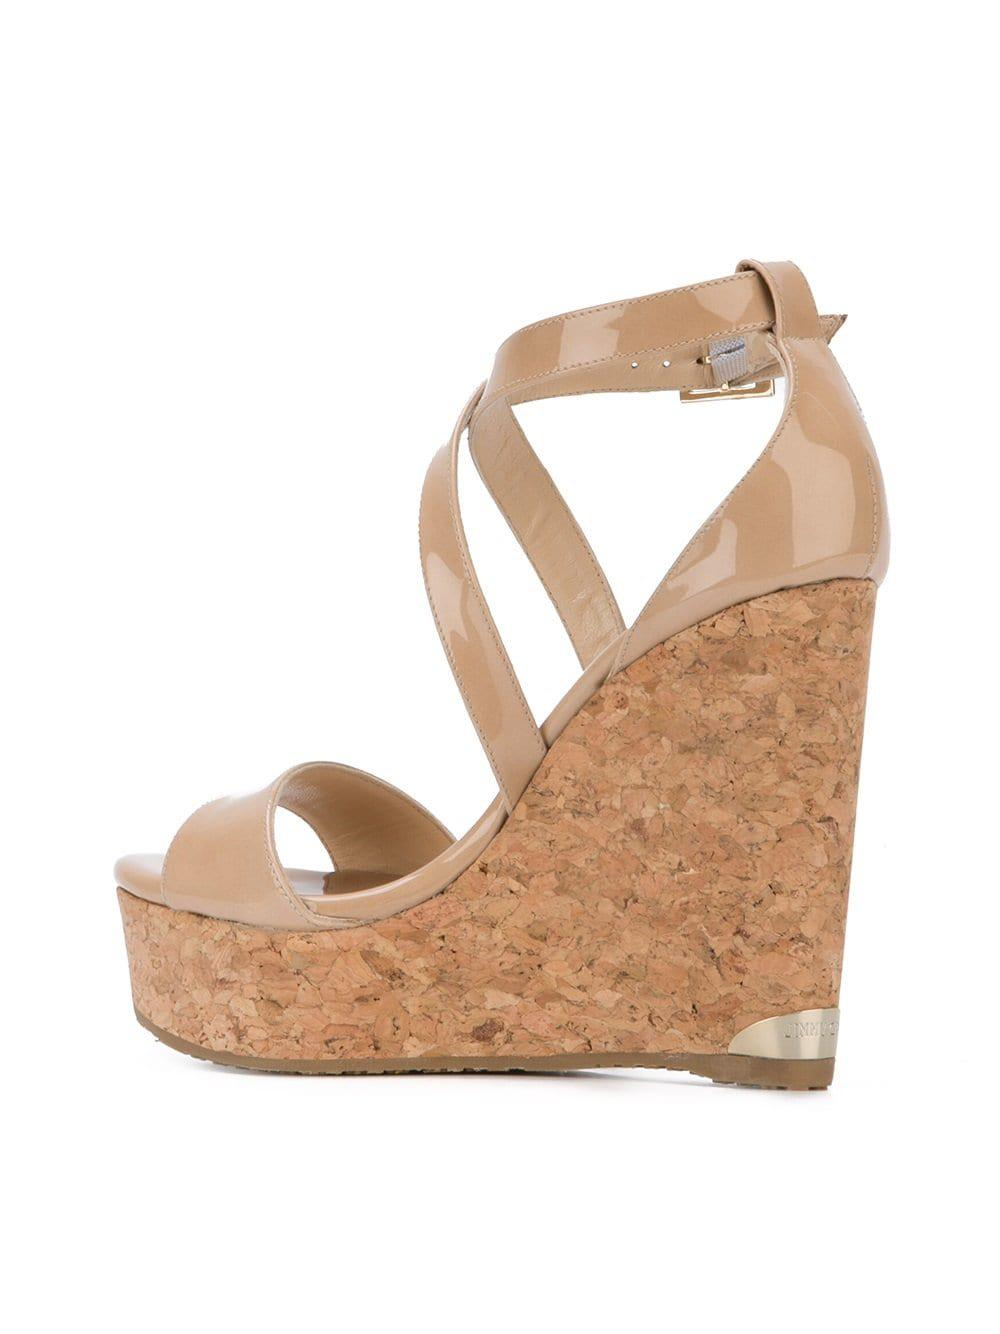 Choo Lyst Natural In 'nude' Sandals 0ow8nkpx Jimmy tQrdhs